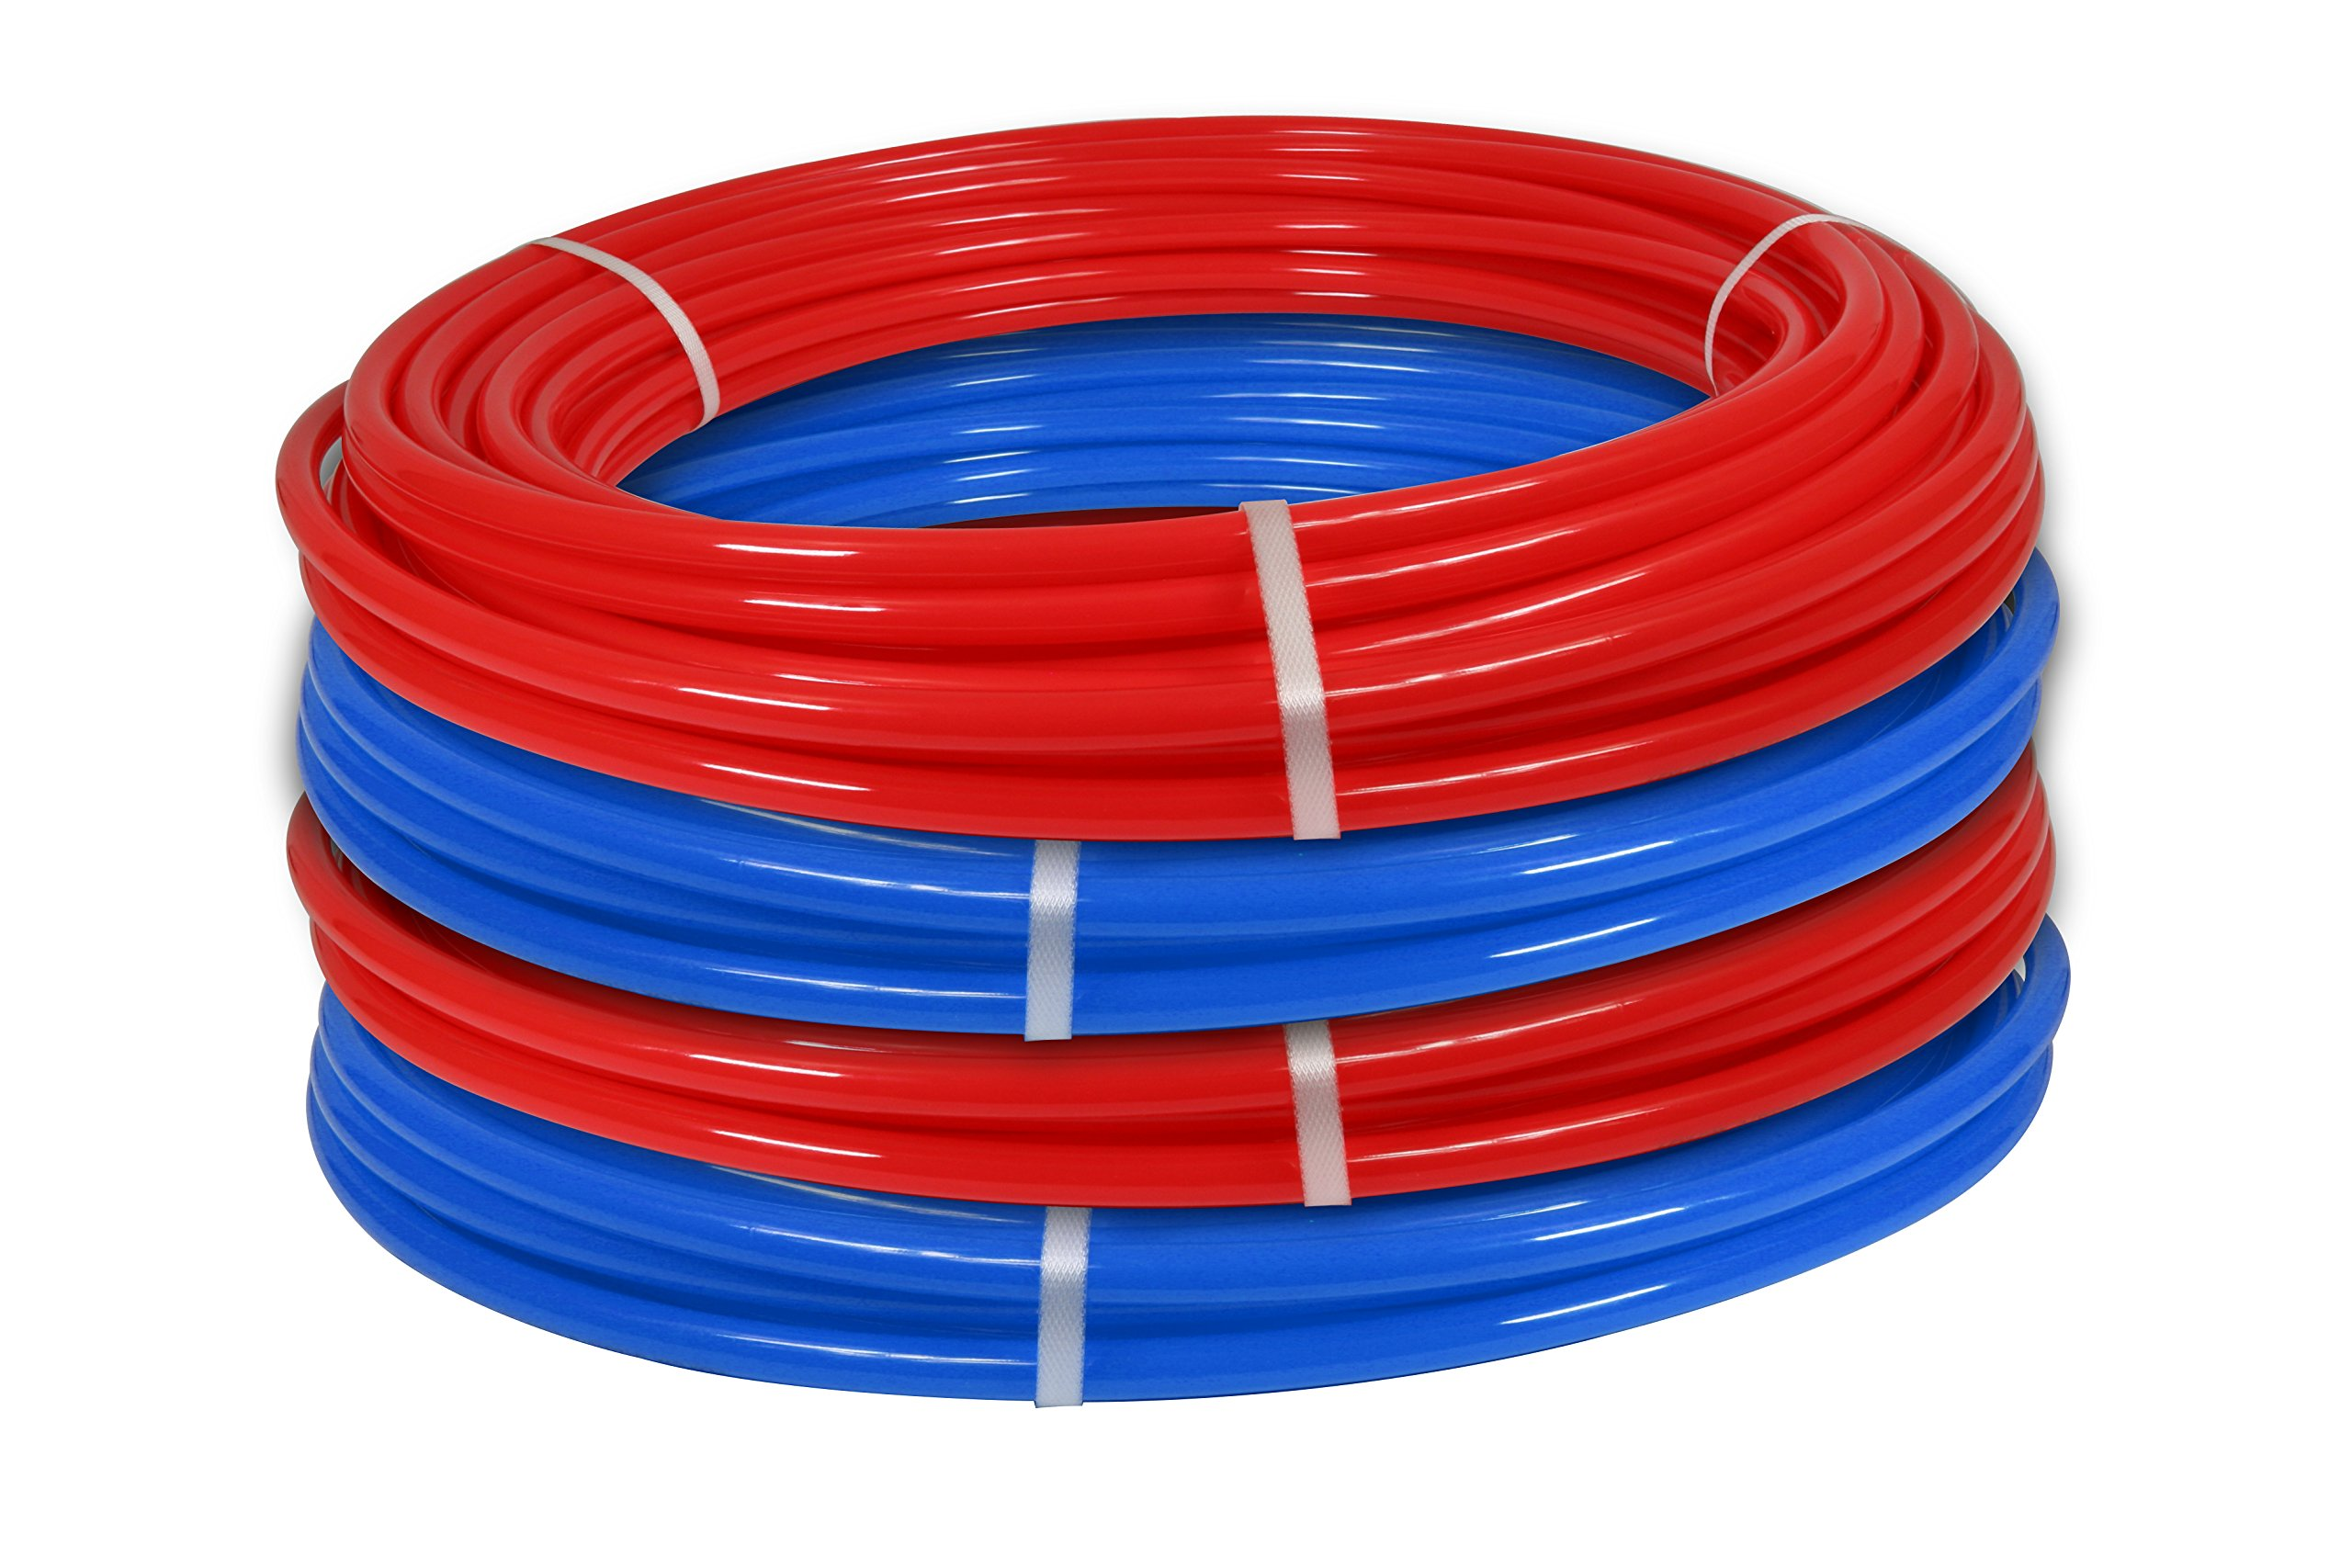 Pexflow PXKT-RB1001234 PEX Potable Water Tubing Combo Non-Barrier Pipe, 1/2 Inch x 100 Feet (Red + Blue) + 3/4 Inch x 100 Feet (Red + Blue)